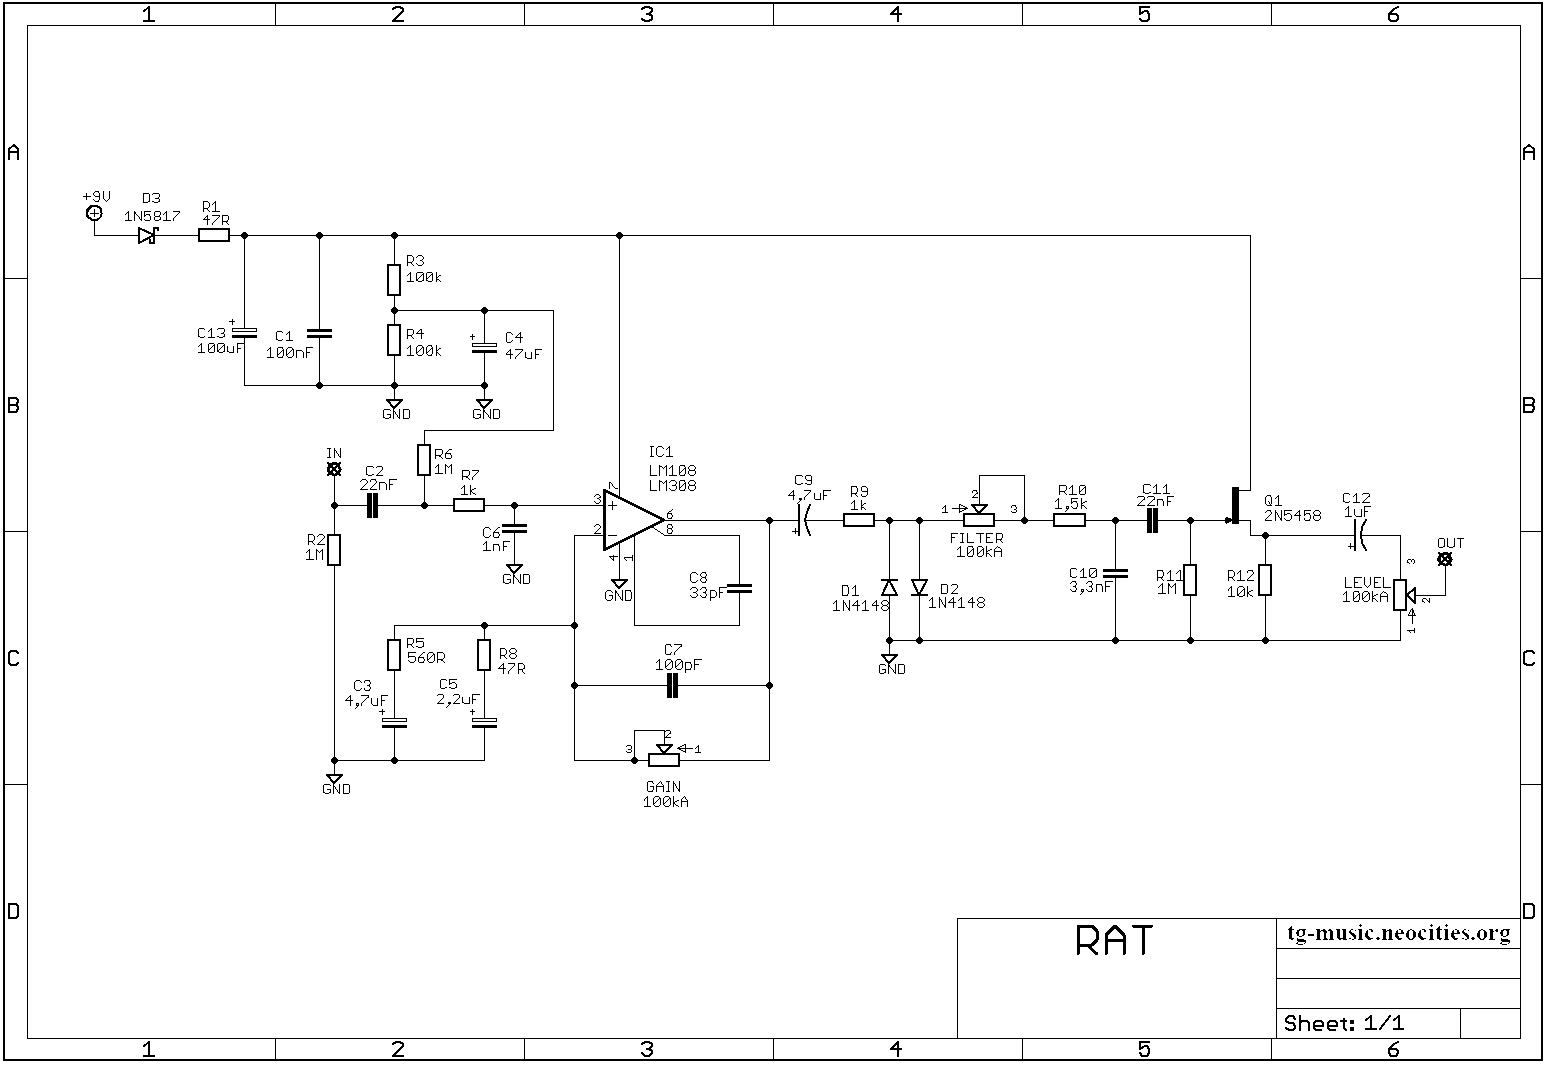 Proco RAT Schematic